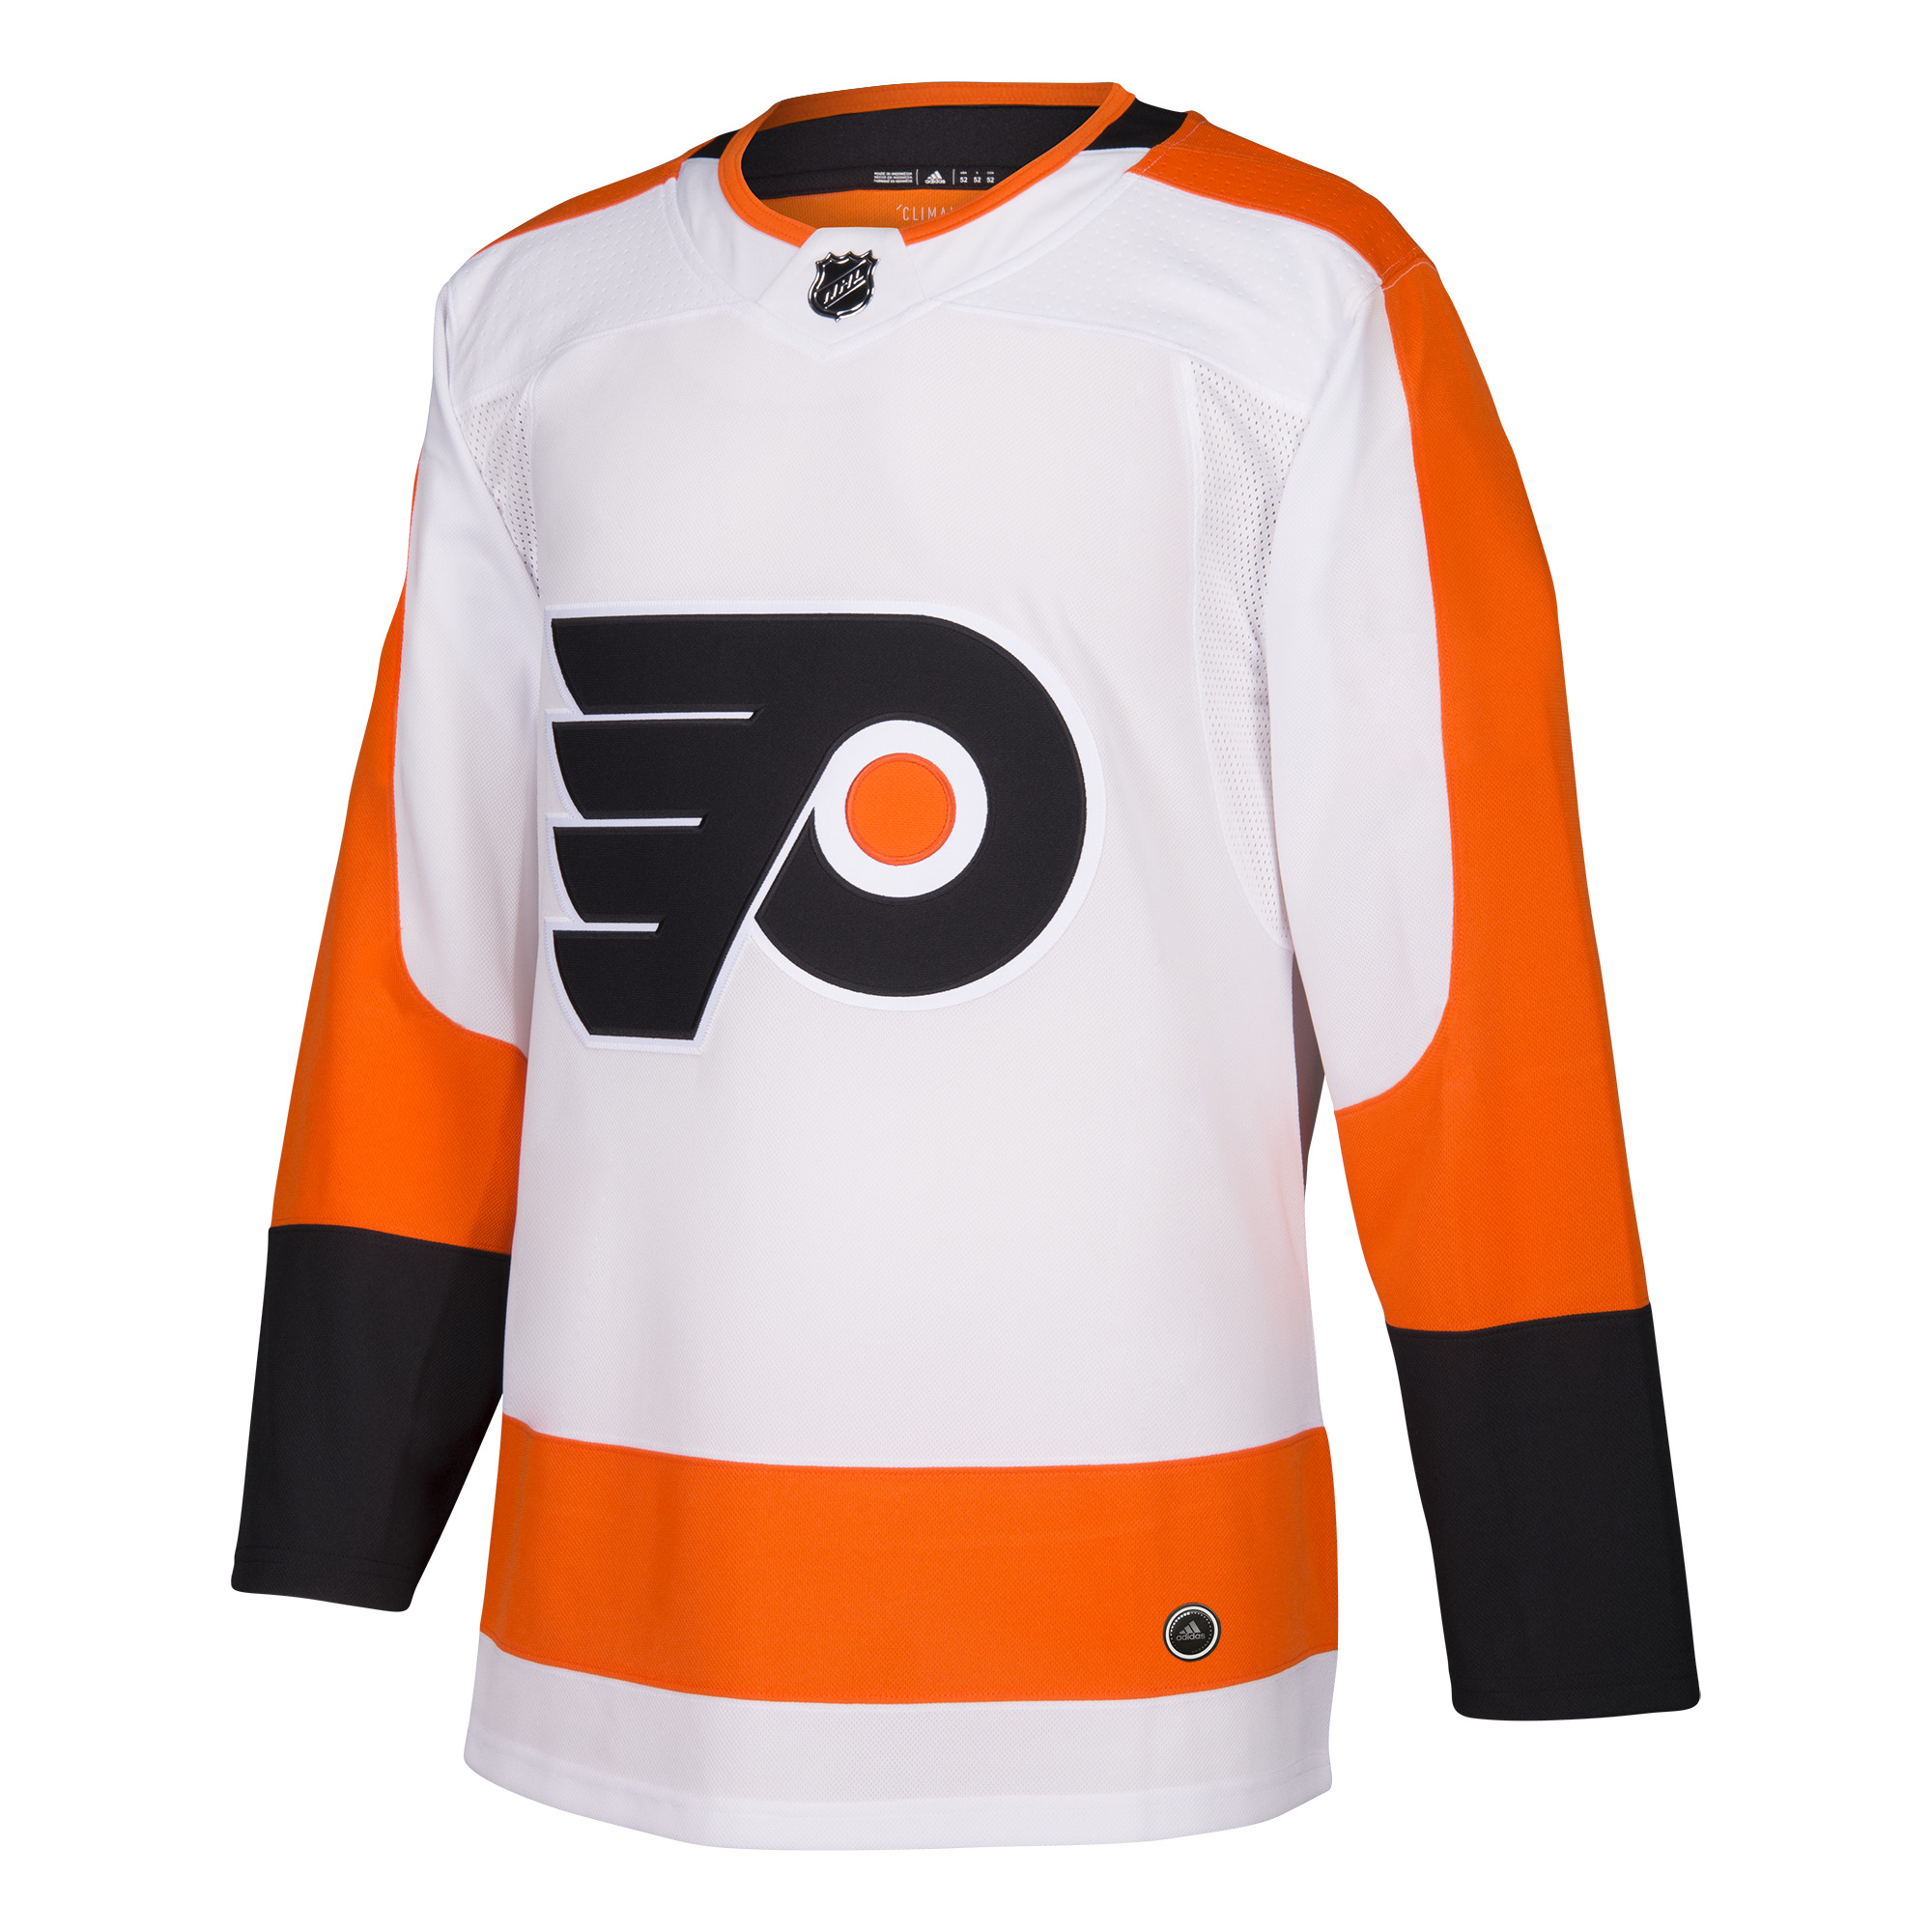 Philadelphia Flyers Men s ADIZERO Away White Jersey by Adidas ... 3b4babae0